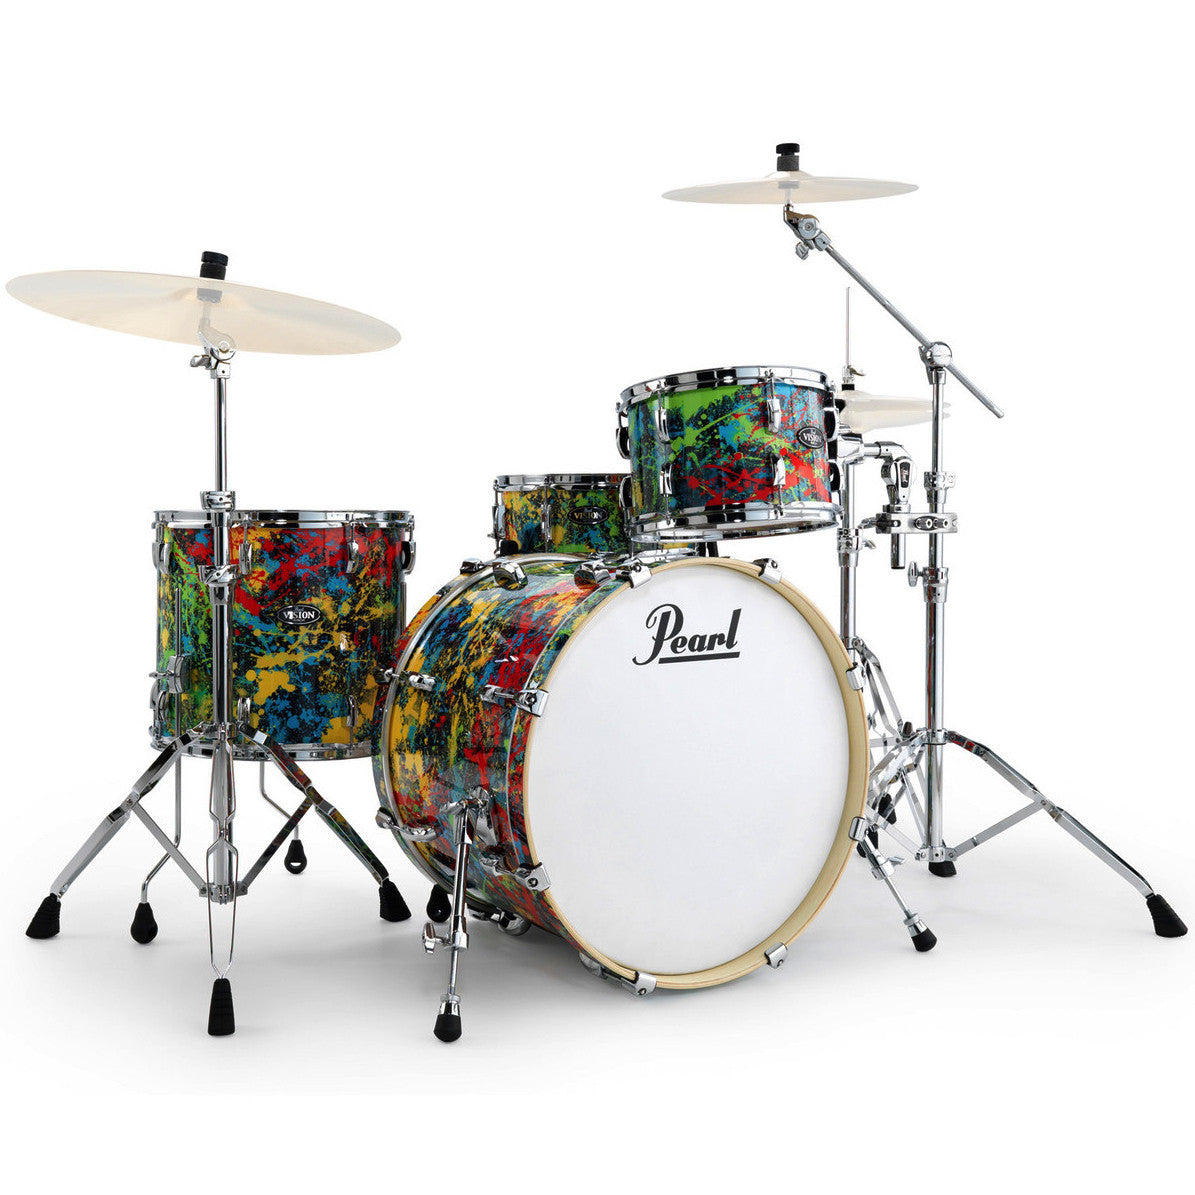 "Pearl Vision NY Splatter LTD Edition with extra 13"" Tom & Hardware"